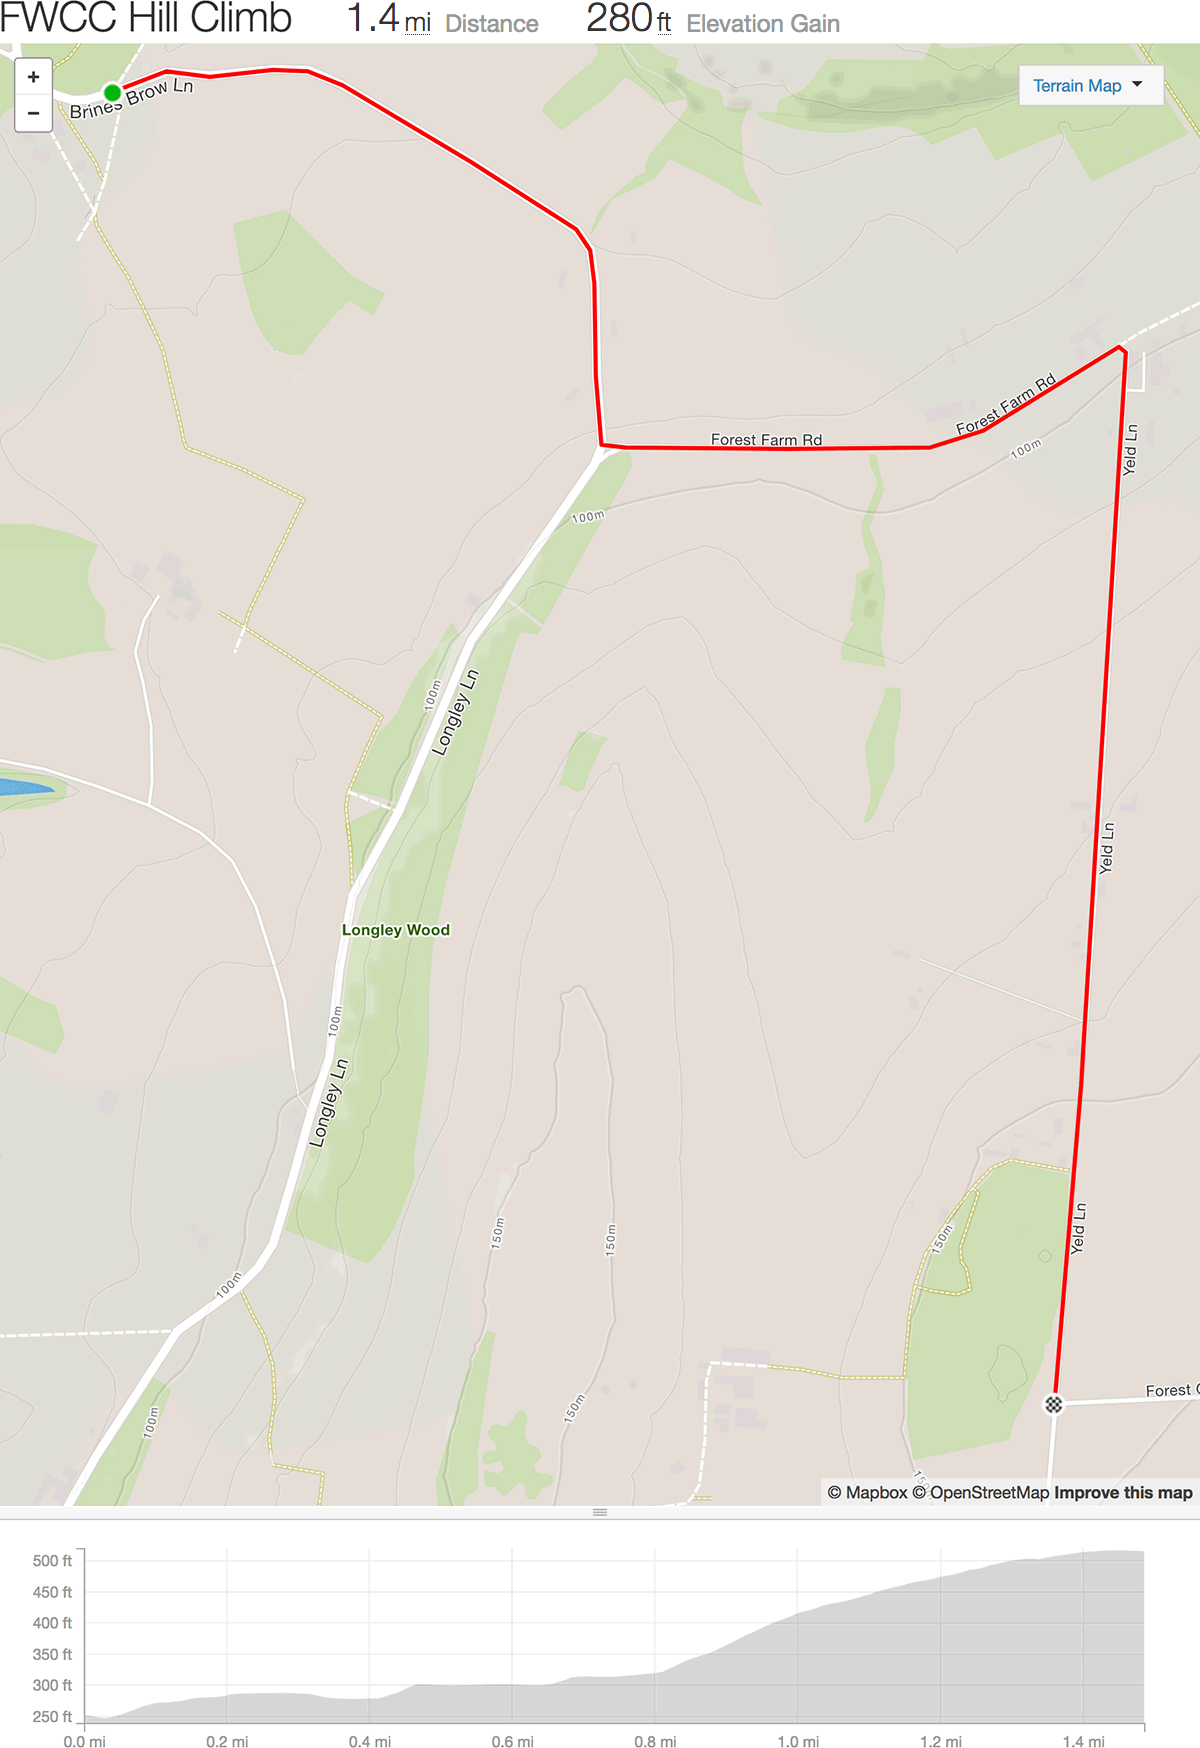 frodsham wheelers hillclimb route 280ft 1.4 miles